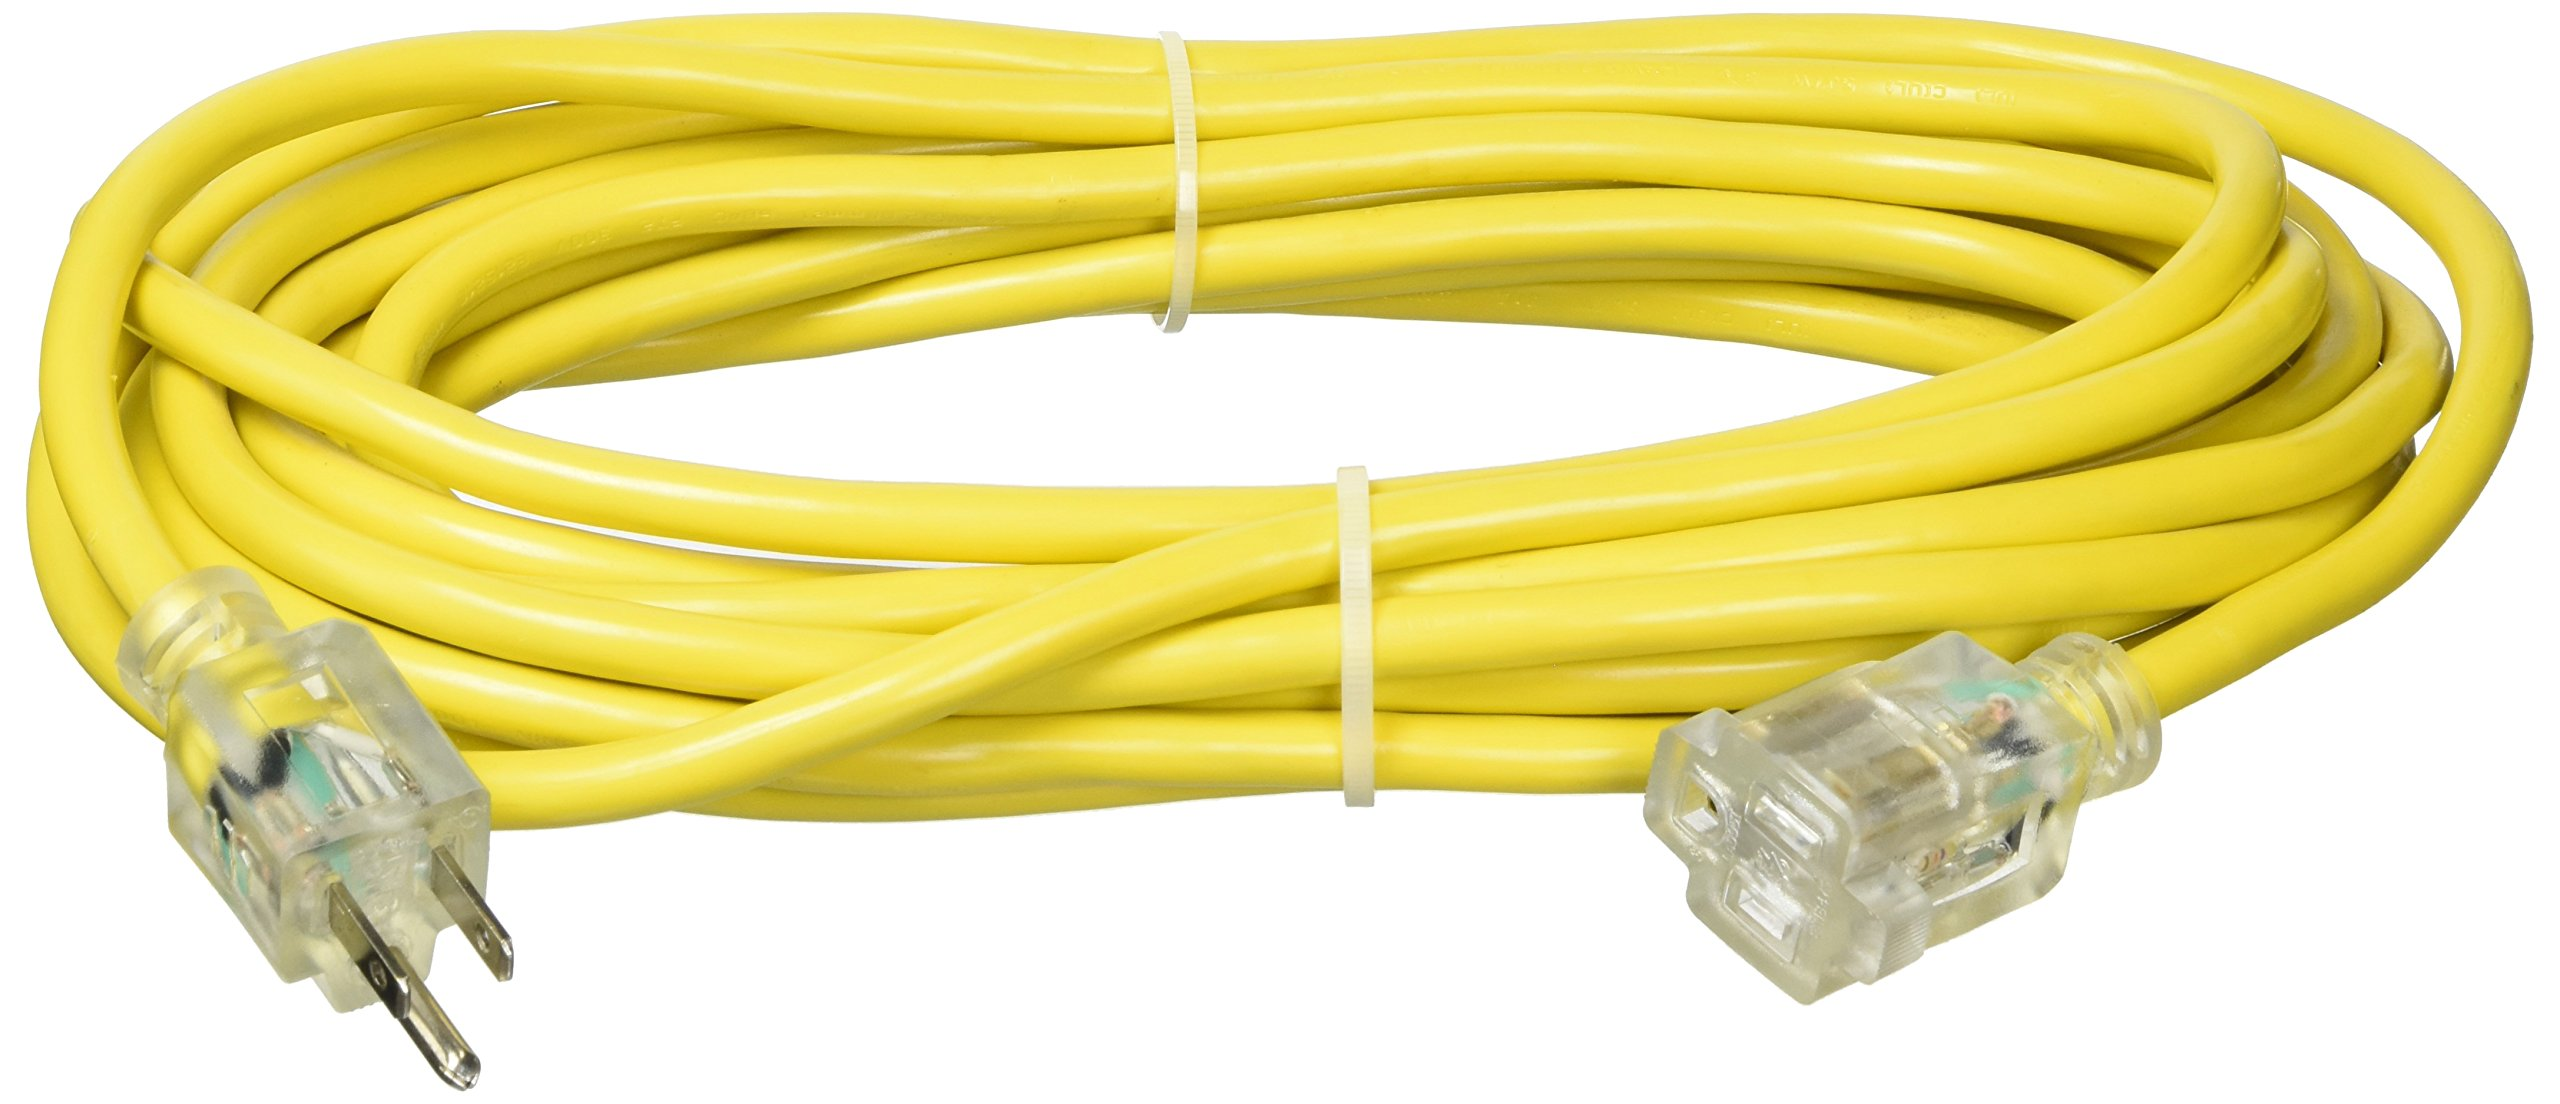 ATE Pro. USA 70045 Extension Cord, 25', 14 Gauge, 3-Prong